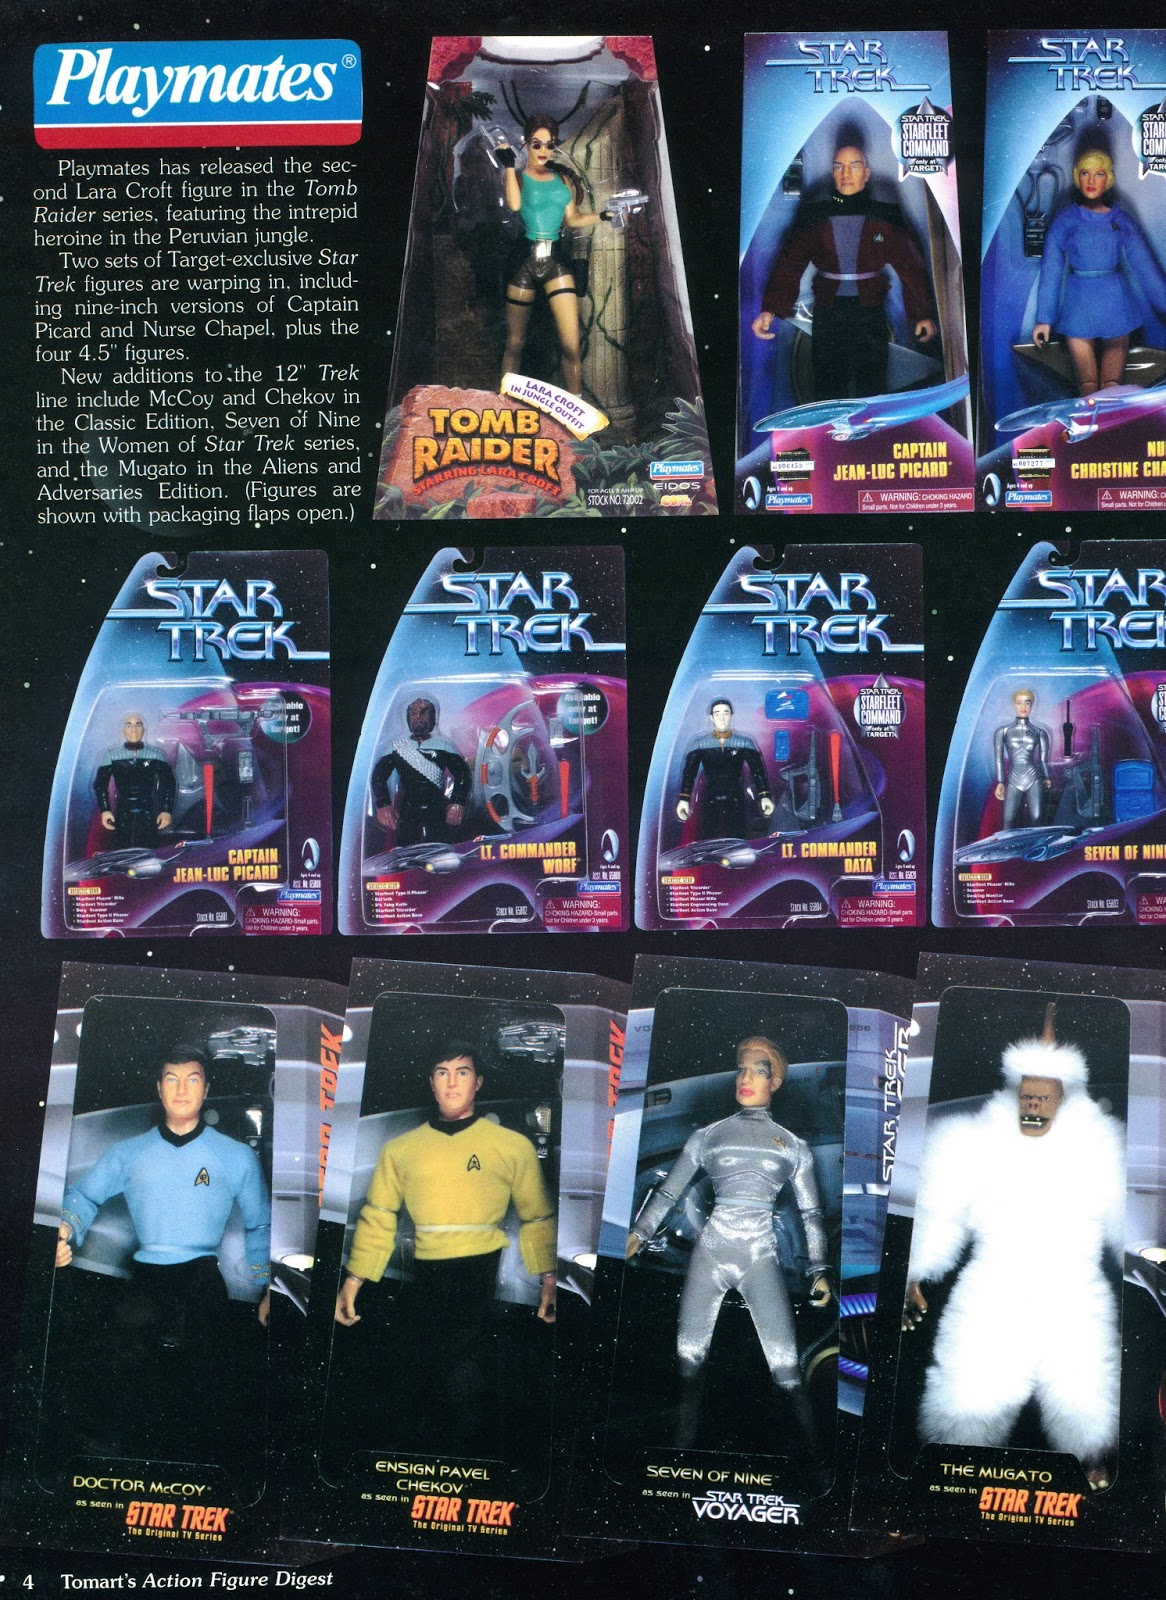 Star Trek Playmates Warp Factor Target Exclusive